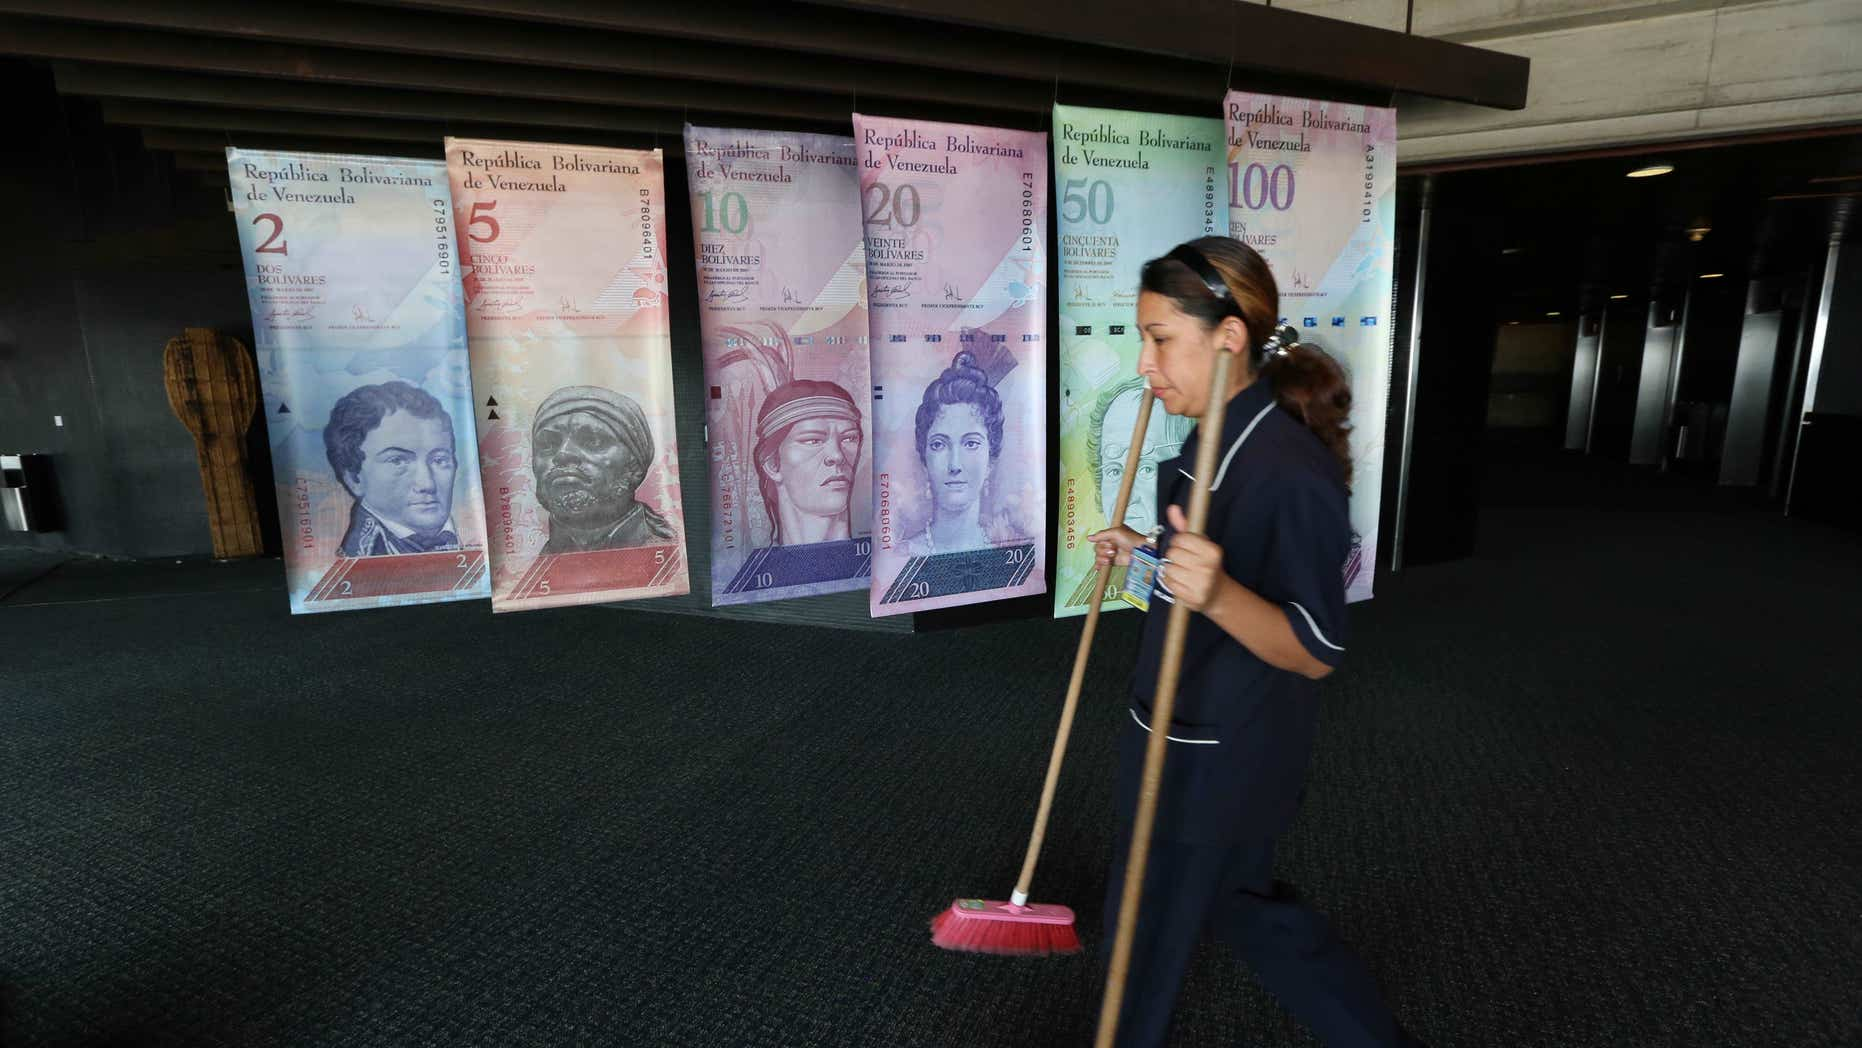 A cleaning woman walks by replicas of Venezuela's currency bills, hung in a hallway at the Central bank office building in Caracas, Venezuela, Tuesday, Feb. 10, 2015. Venezuela's  Minister of Economy, Finance and Public Banking, Rodolfo Marco Torres and Venezuela's Central Bank Chairman Nelson J. Merentes announced a new system they will allow a free-floating exchange rate for the country's battered currency while maintaining a subsidized rate for key imports. Venezuela has maintained strict currency controls since 2003. (AP Photo/Ariana Cubillos)